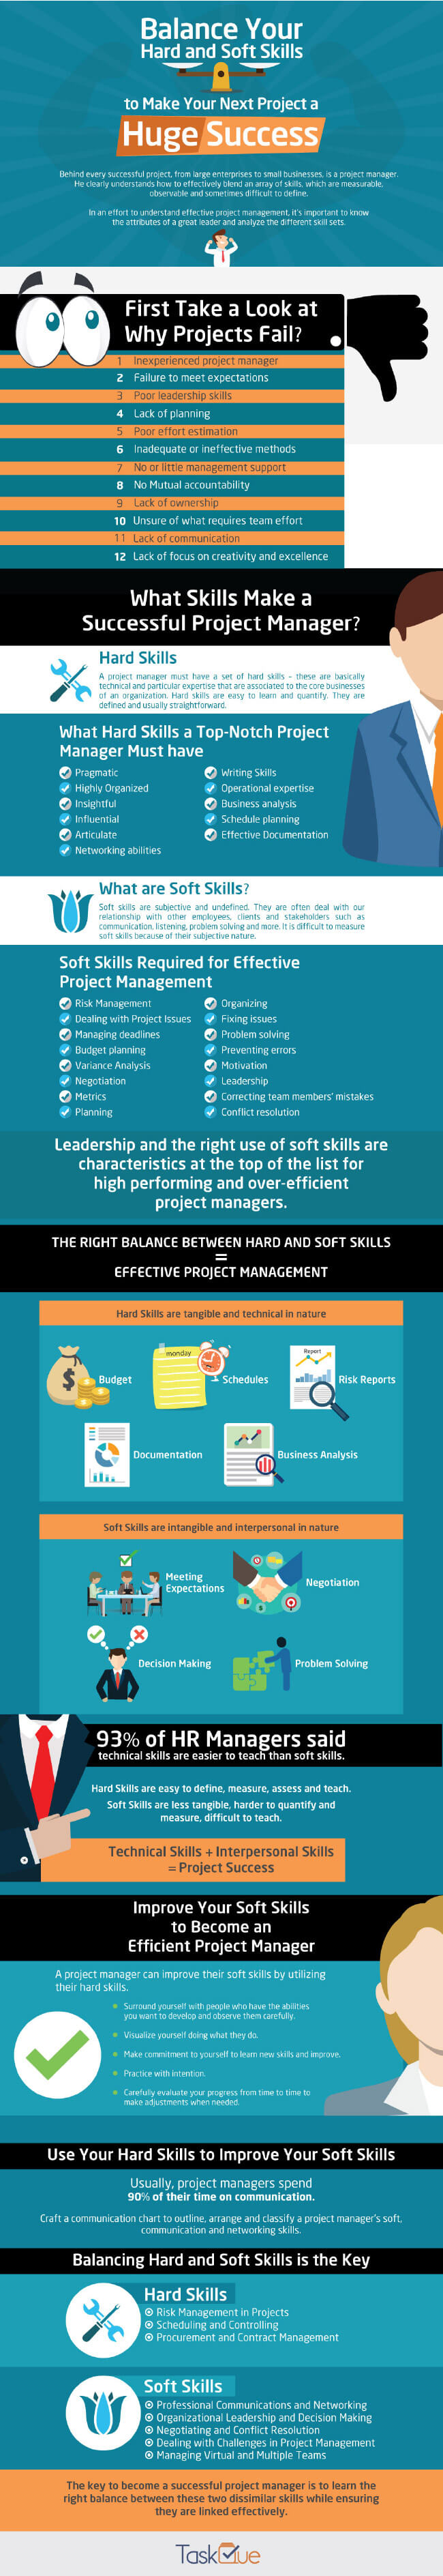 Image titled balance your hard and soft skills to make your next project a huge success